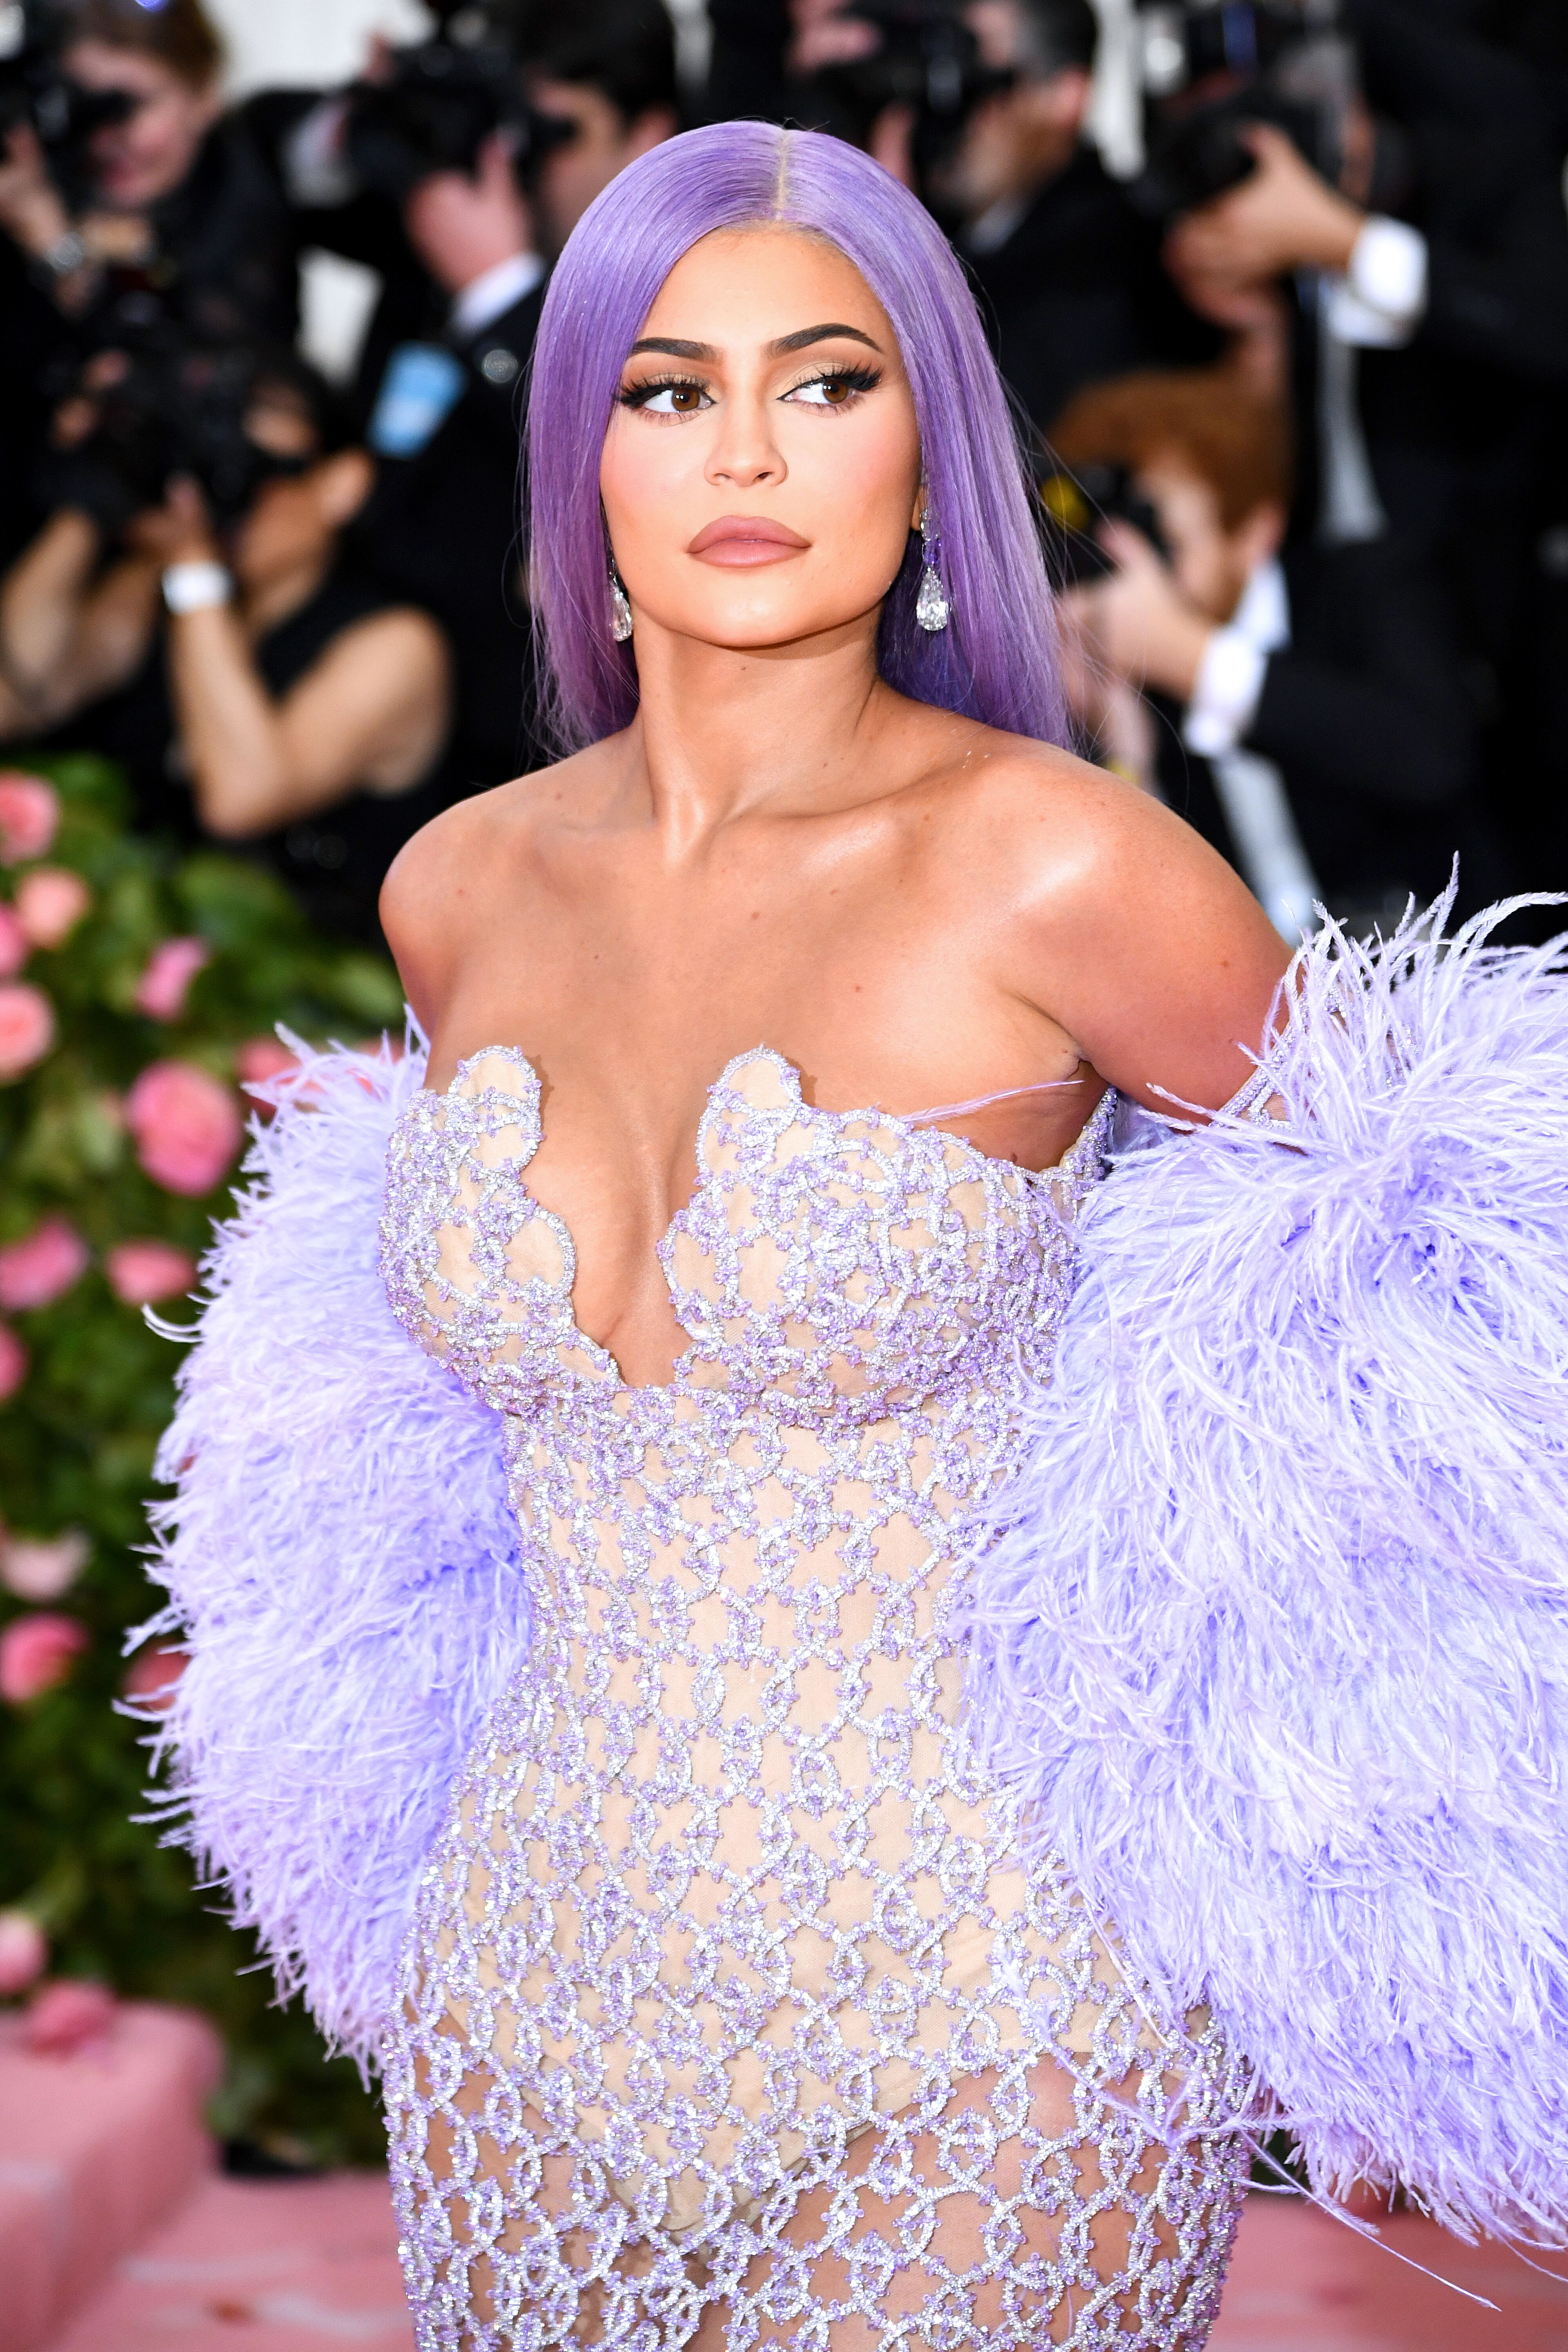 Kylie Jenner at the MET Gala/ Source: Getty Images